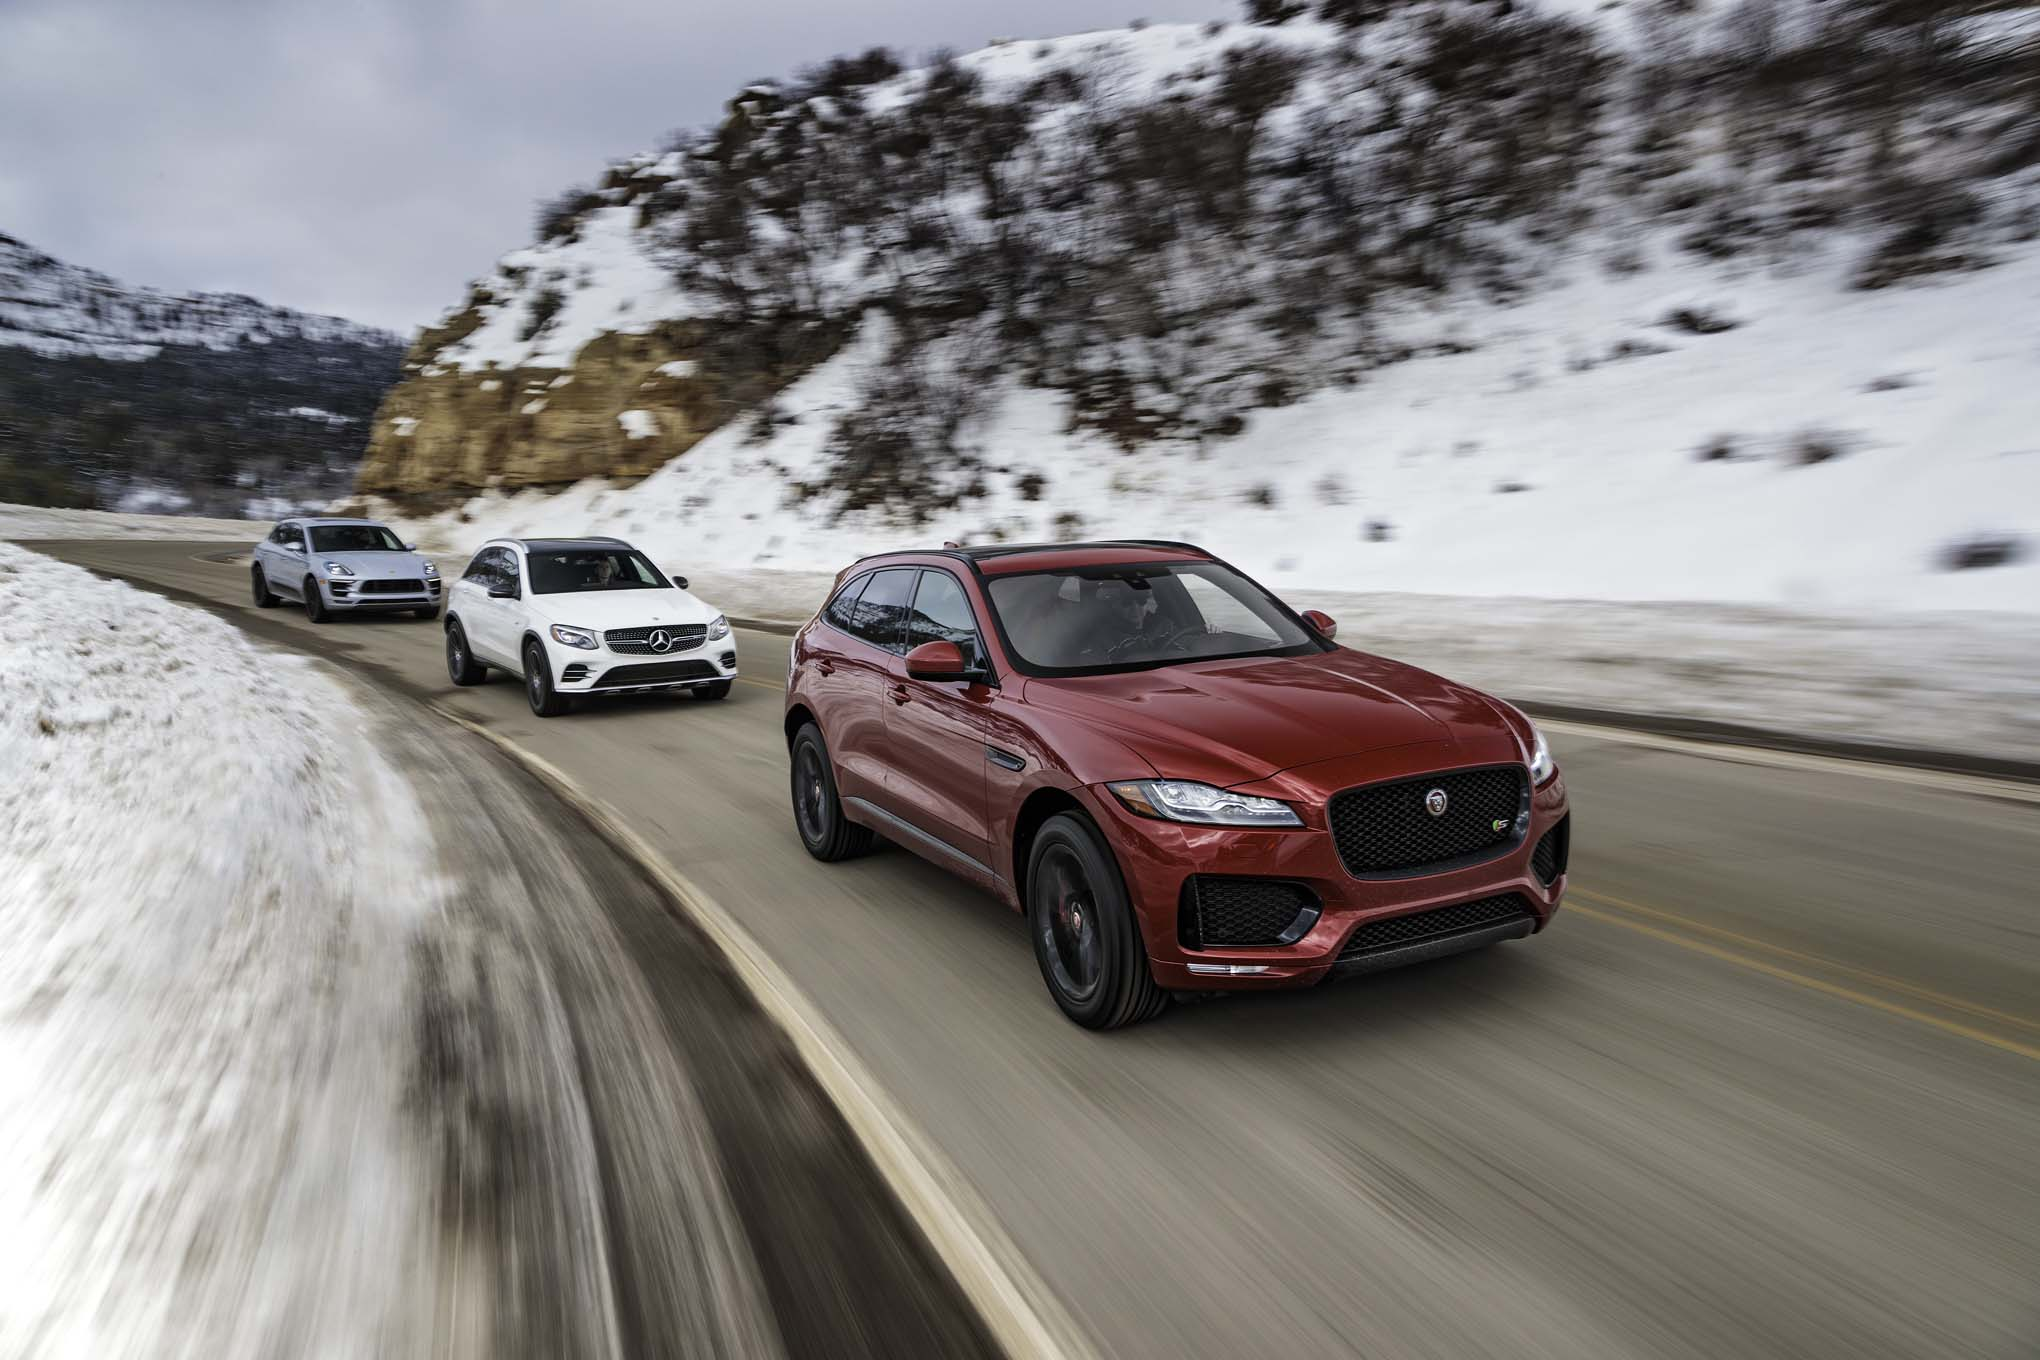 Jaguar F Pace S AWD Mercedes AMG GLC43 4Matic Porsche Macan GTS front three quarter turn